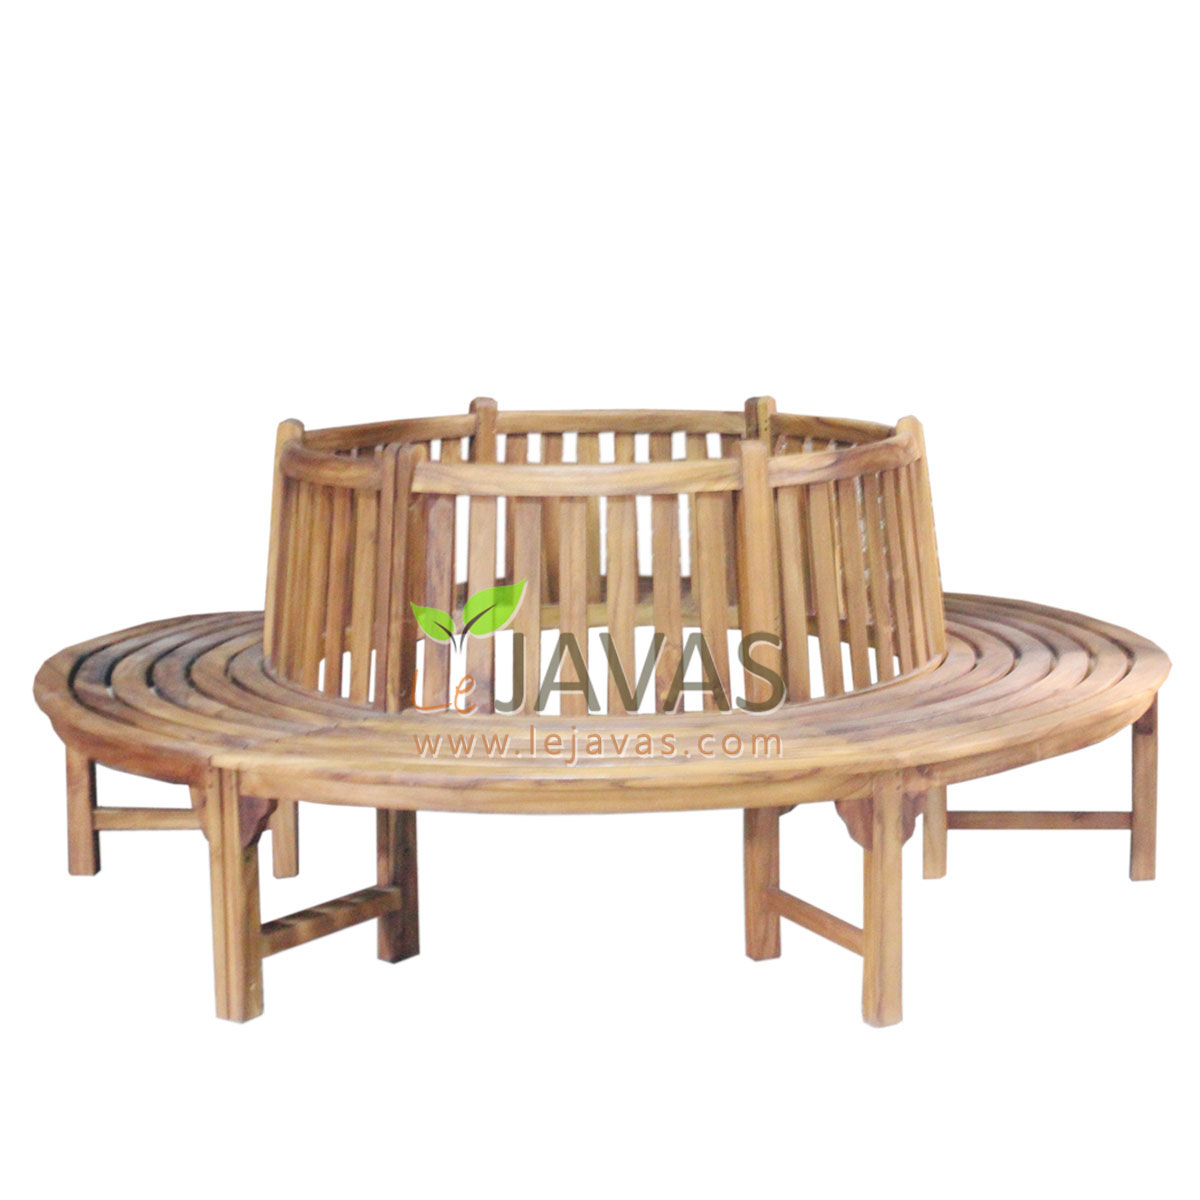 Teak patio round tree bench le javas furniture patio Circular tree bench